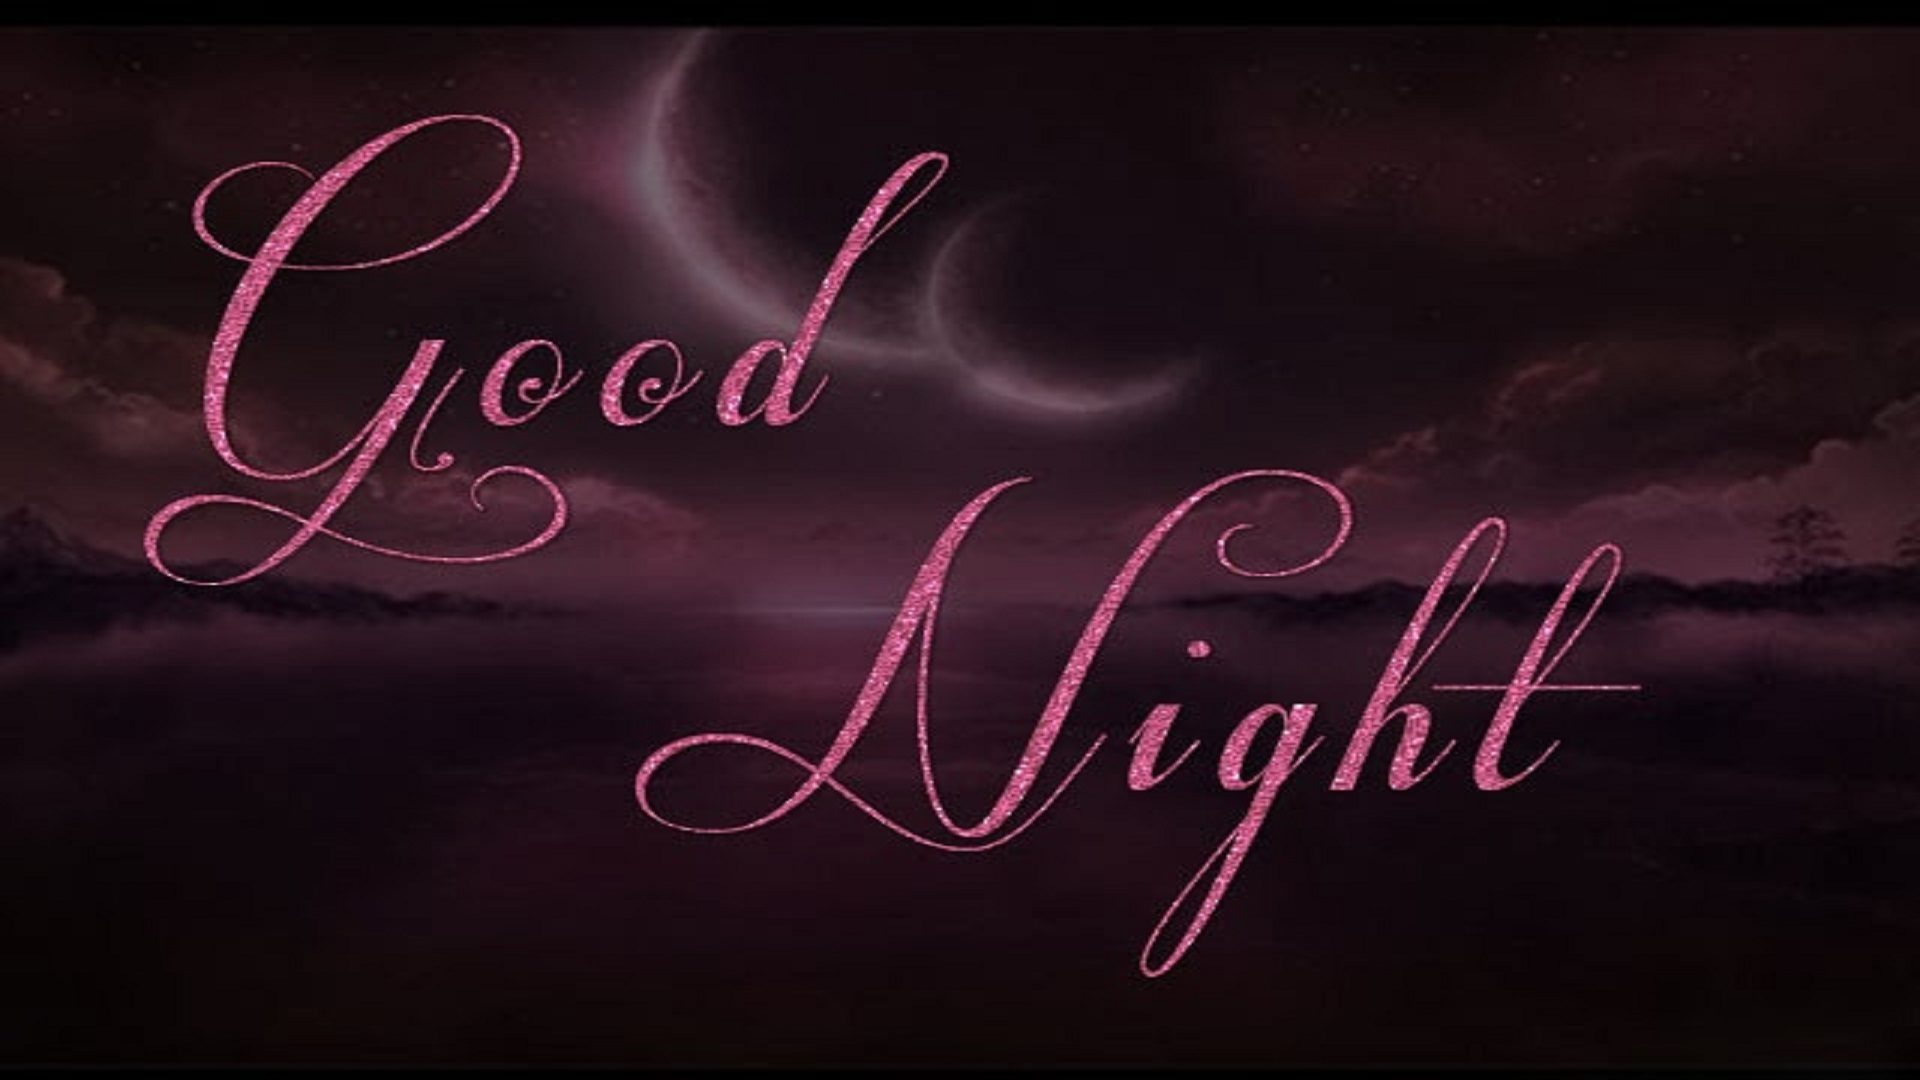 Good Night Greeting Wallpaper 1920×1080